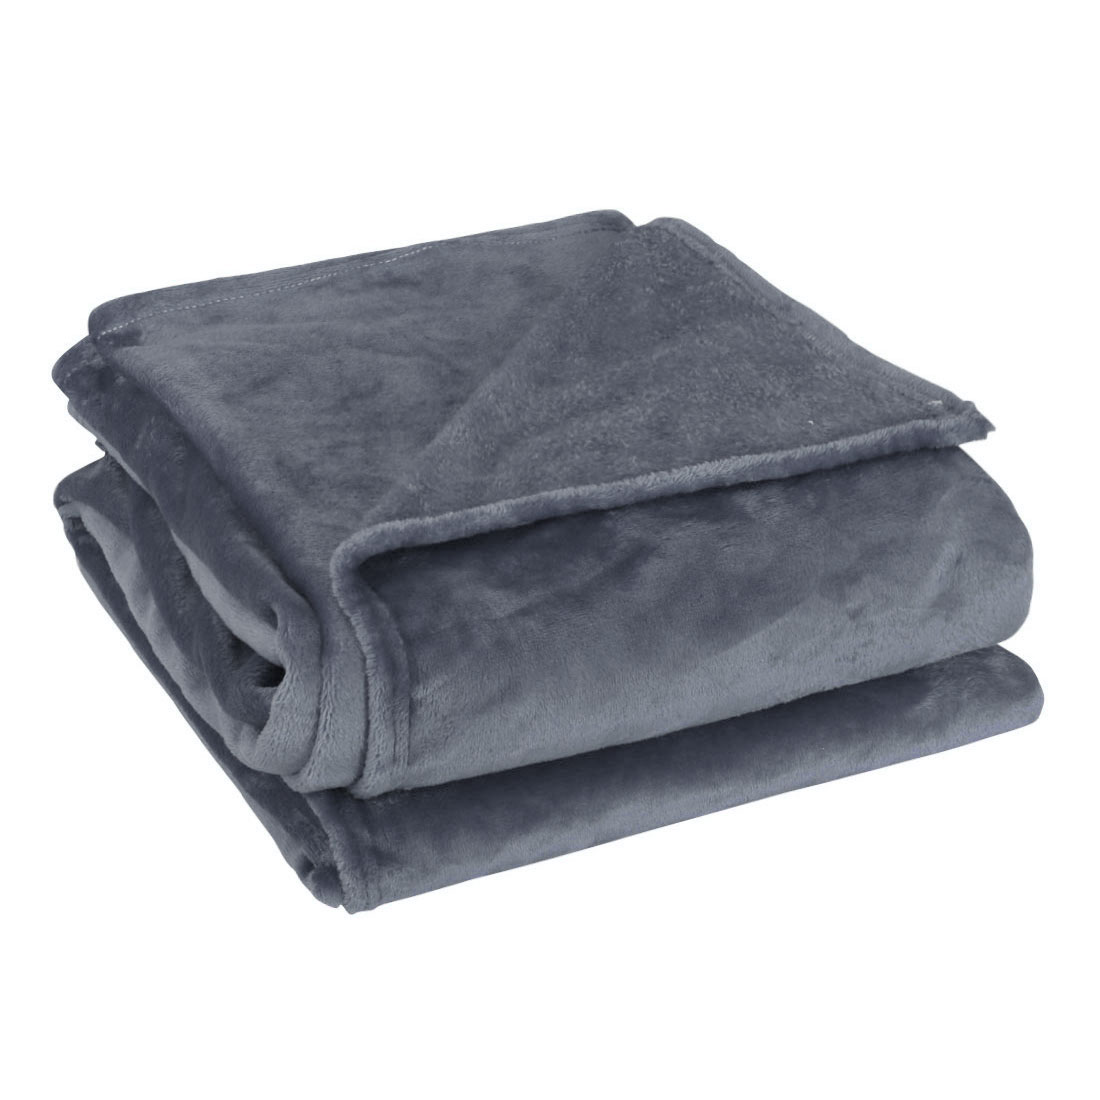 Twin Size Bedroom Bedding Couch Sofa Polyester Warm Soft Throws Blanket Dark Gray 150 x 200cm